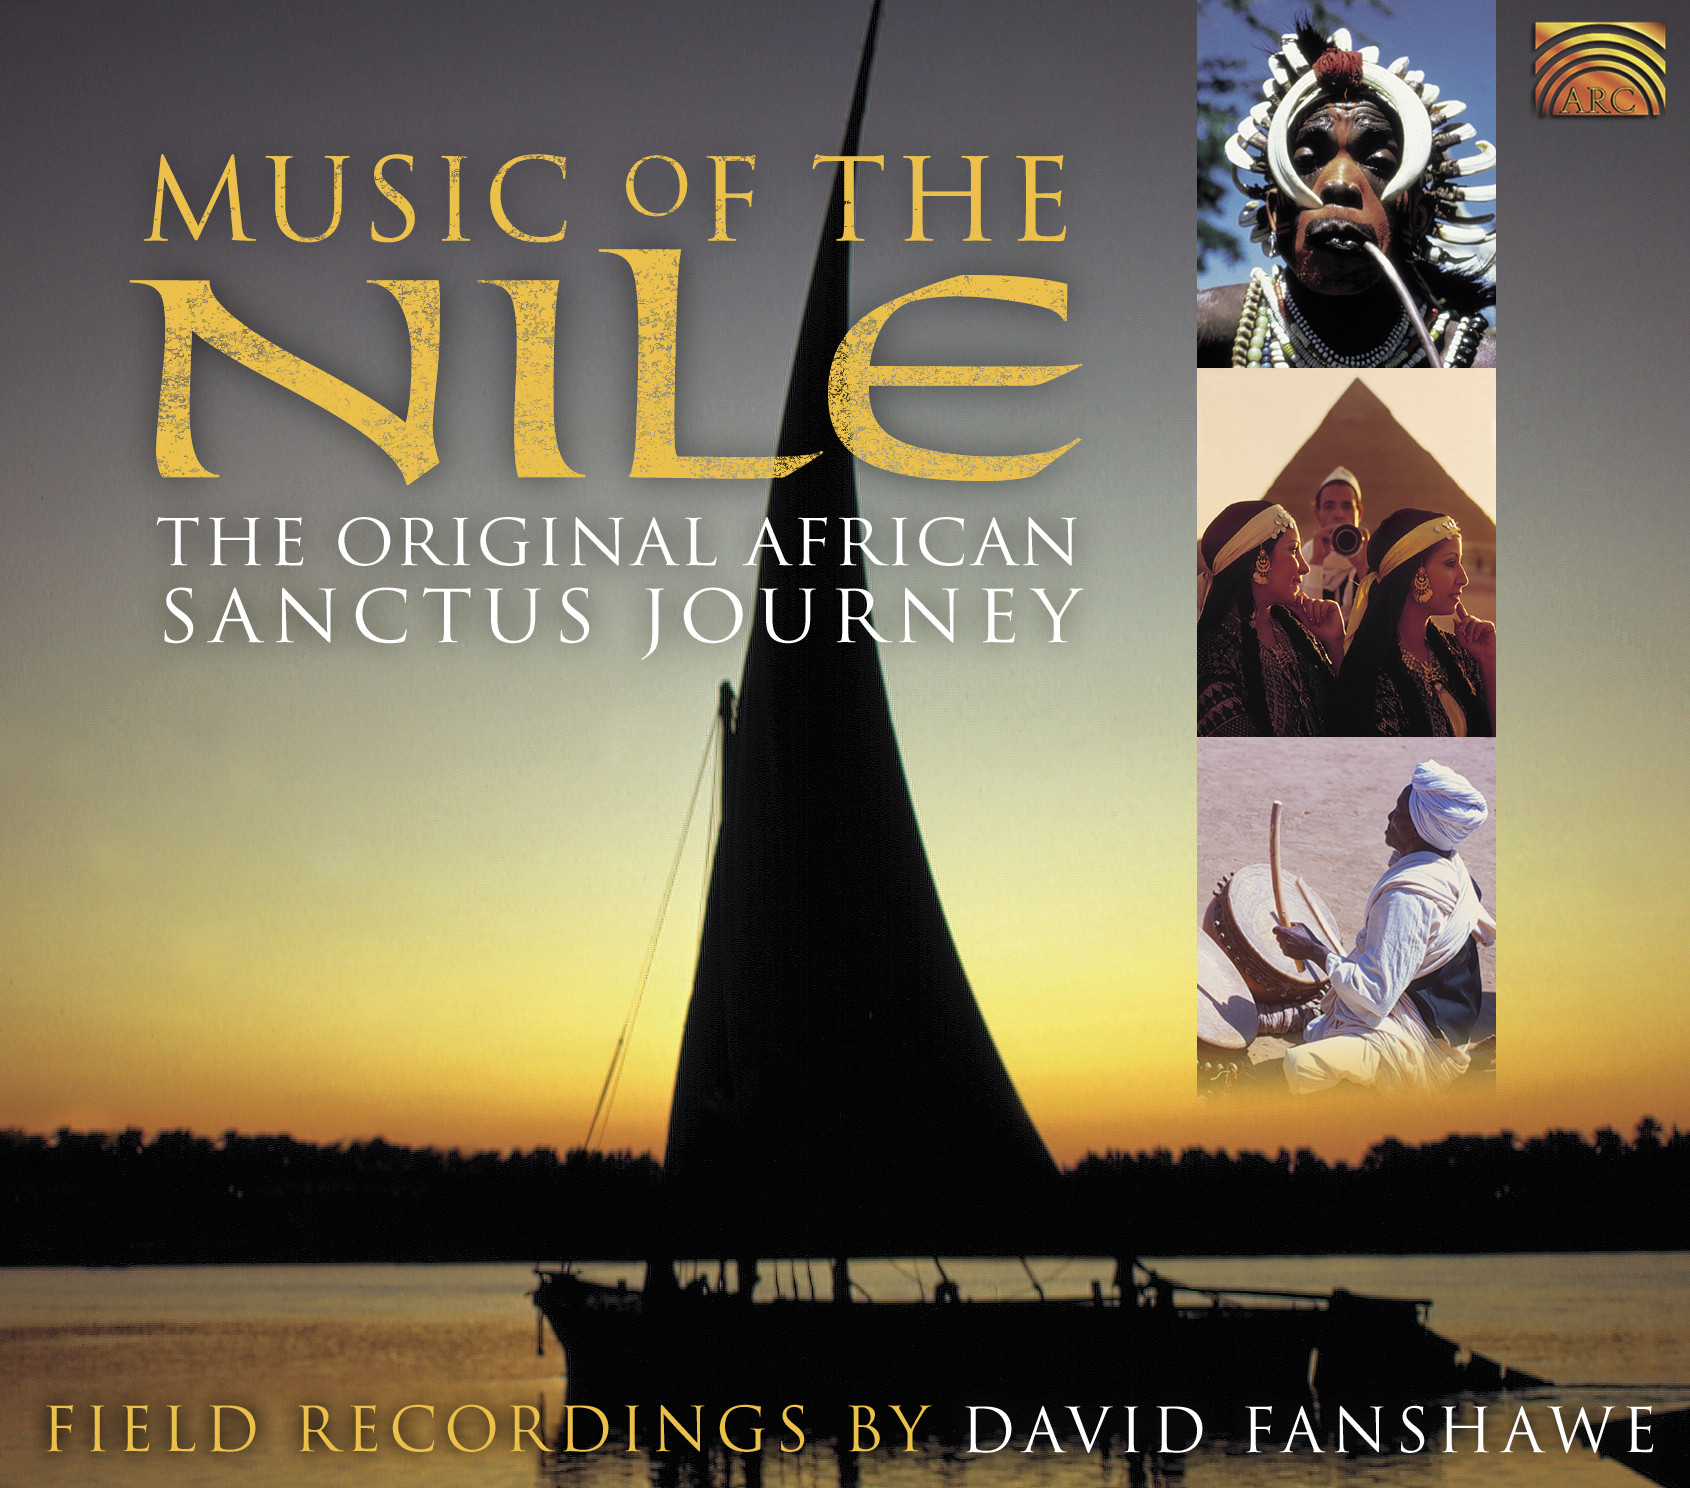 EUCD1793 Music of the Nile - Recordings by David Fanshawe